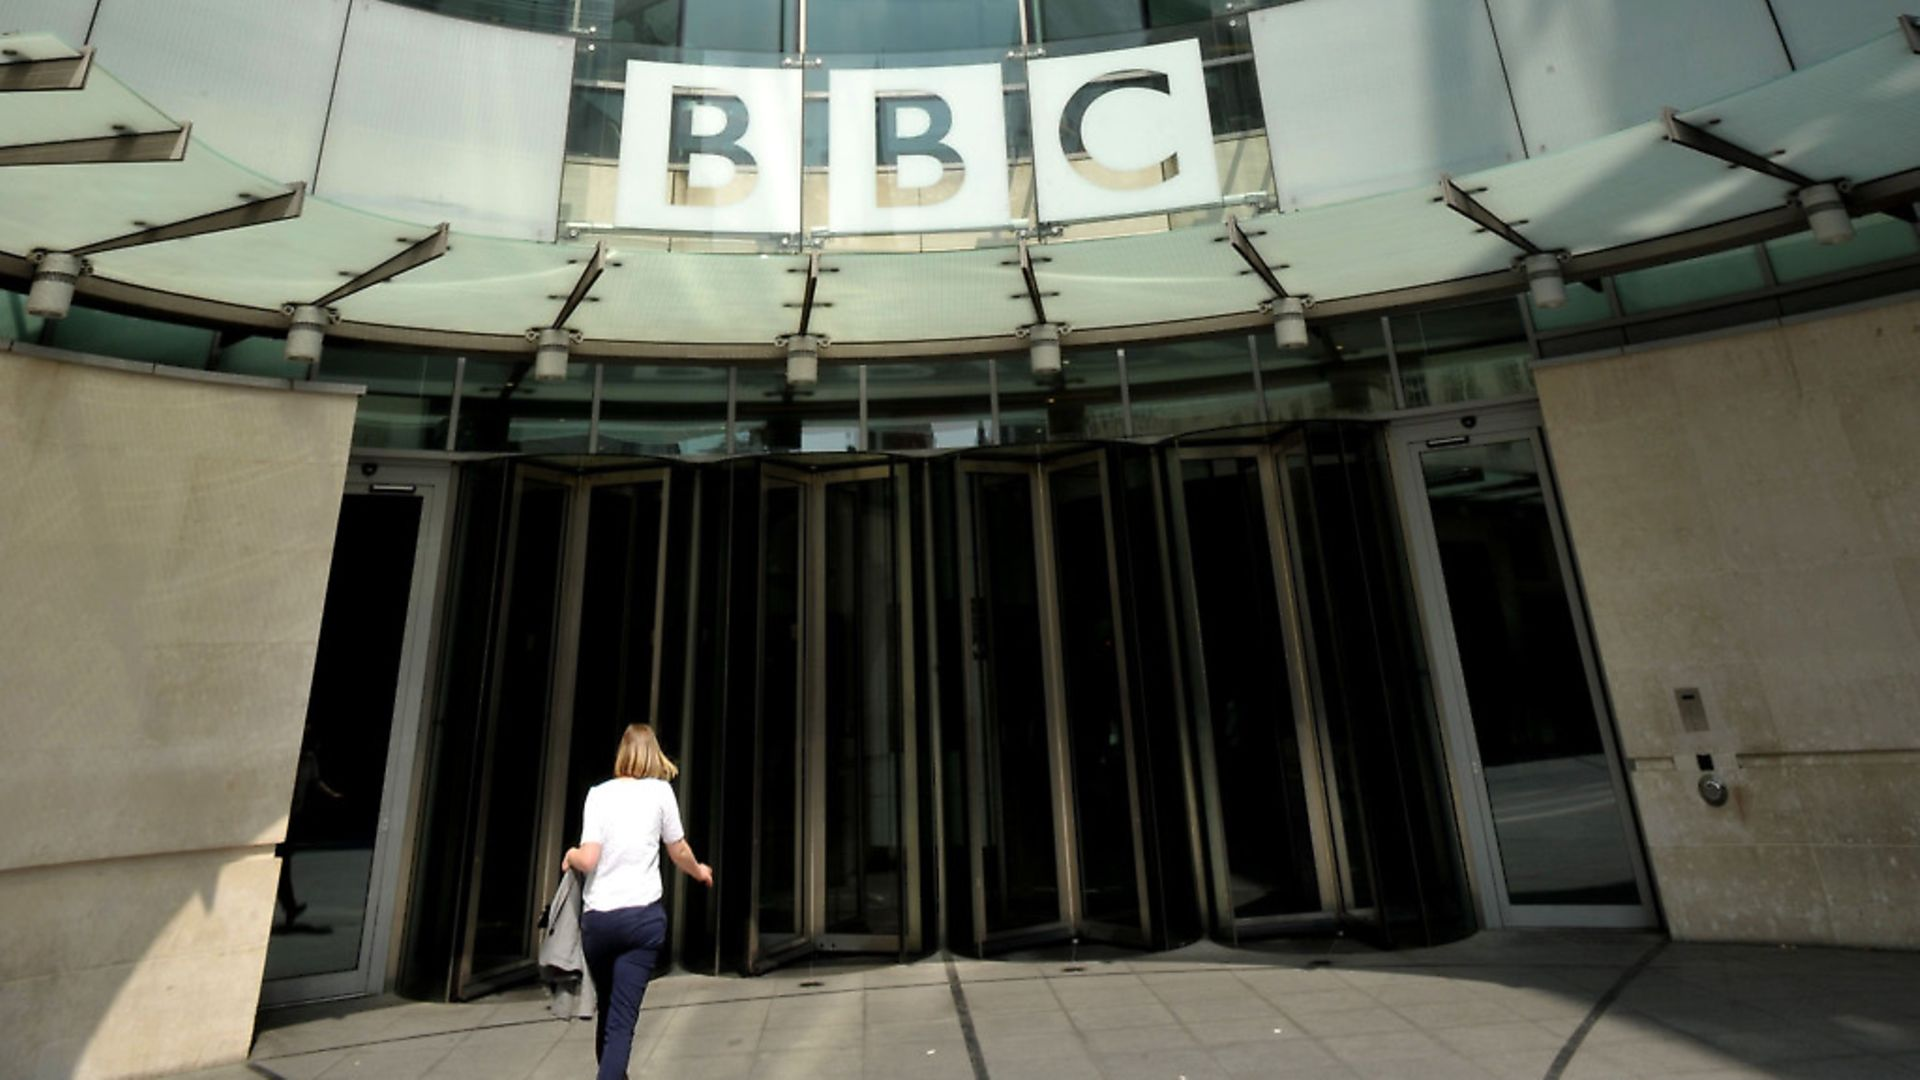 BBC Broadcasting House in London. Photograph: Nick Ansell/PA. - Credit: PA Wire/PA Images